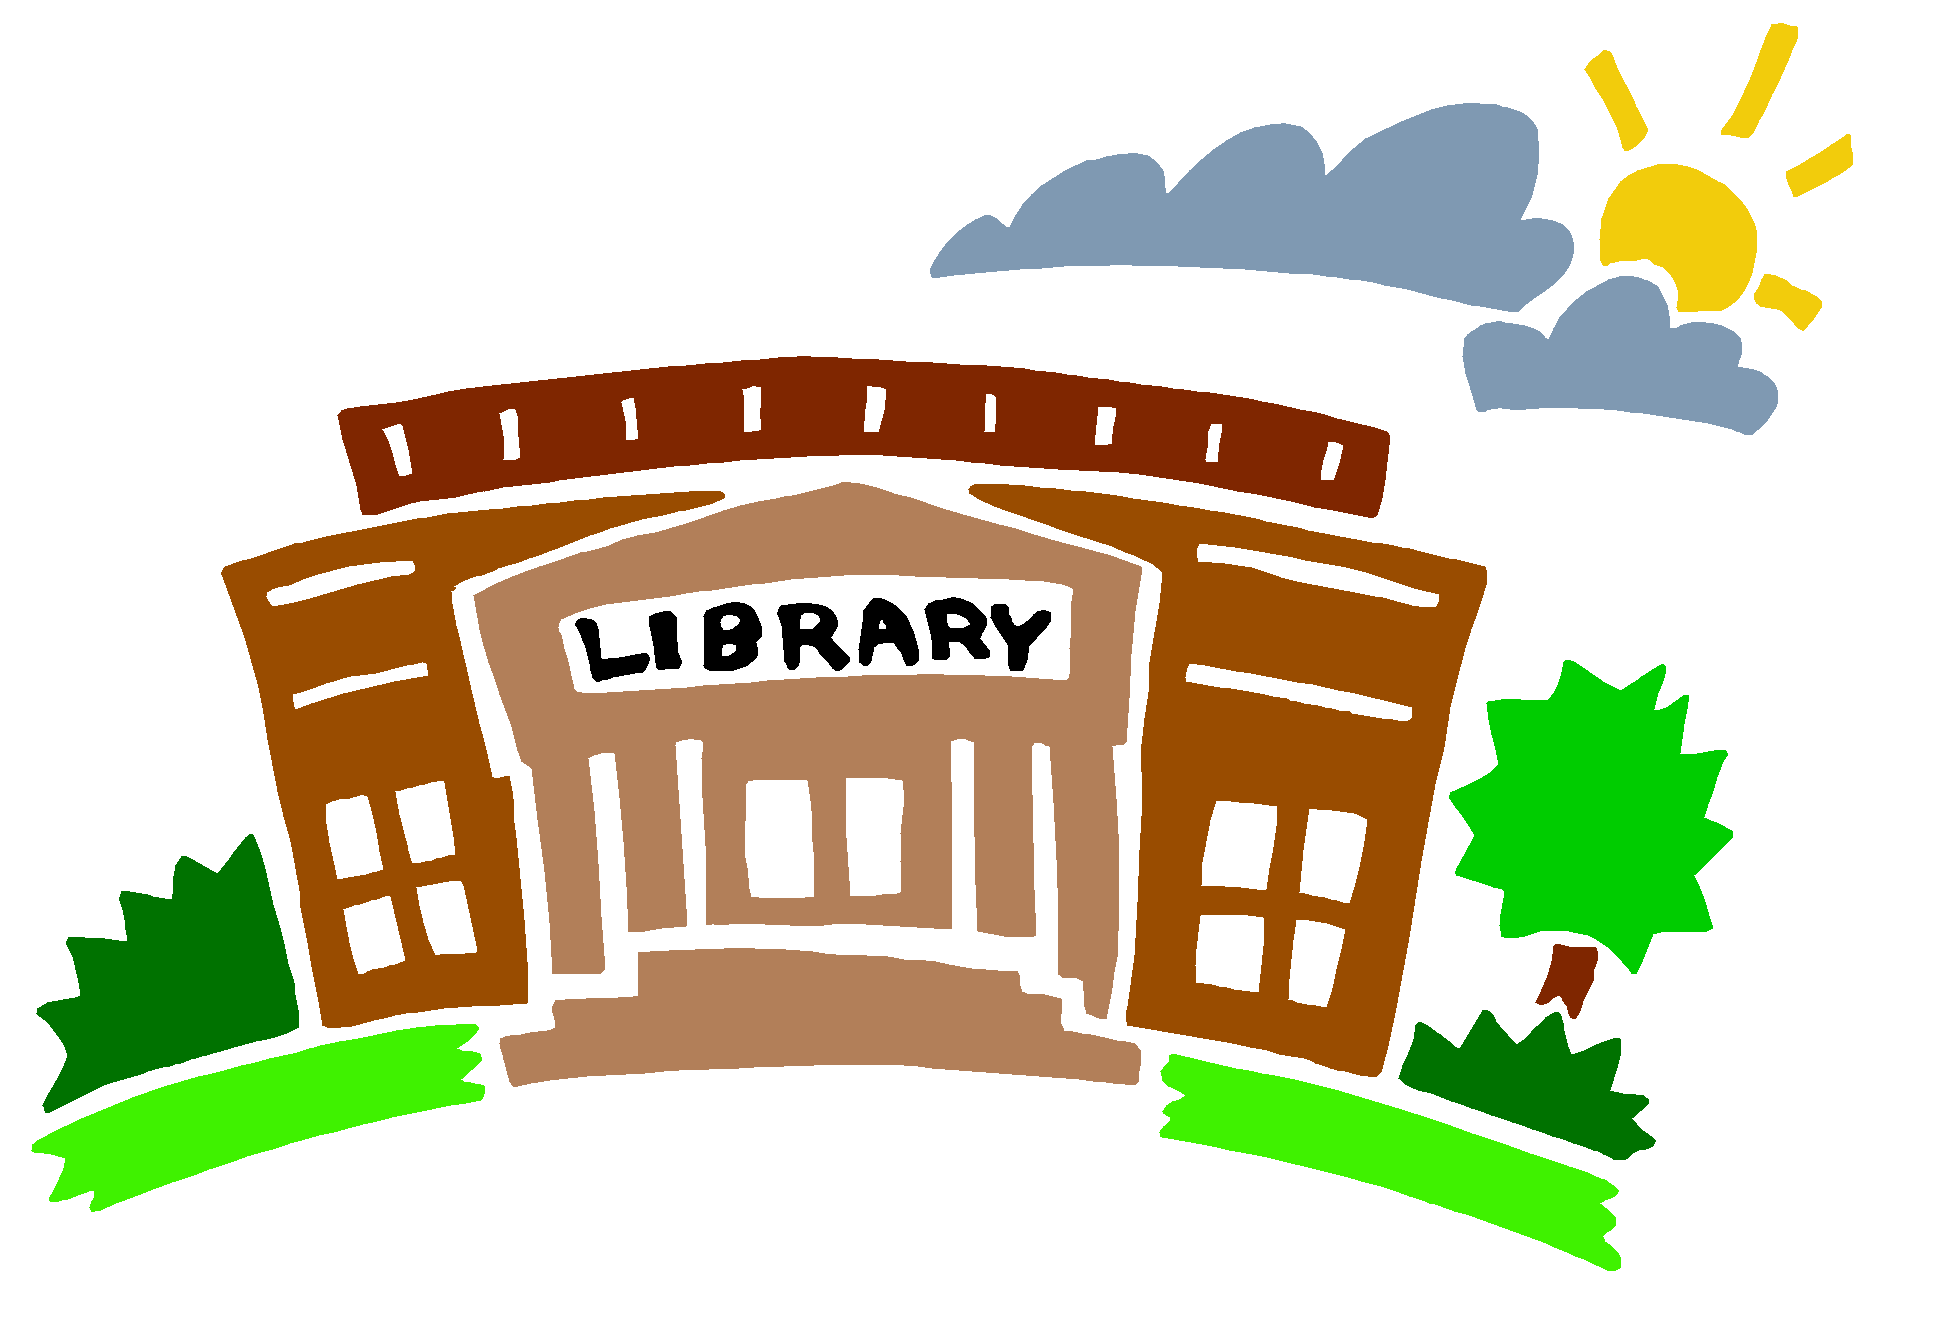 Librarian clipart public library. Resources frames illustrations hd